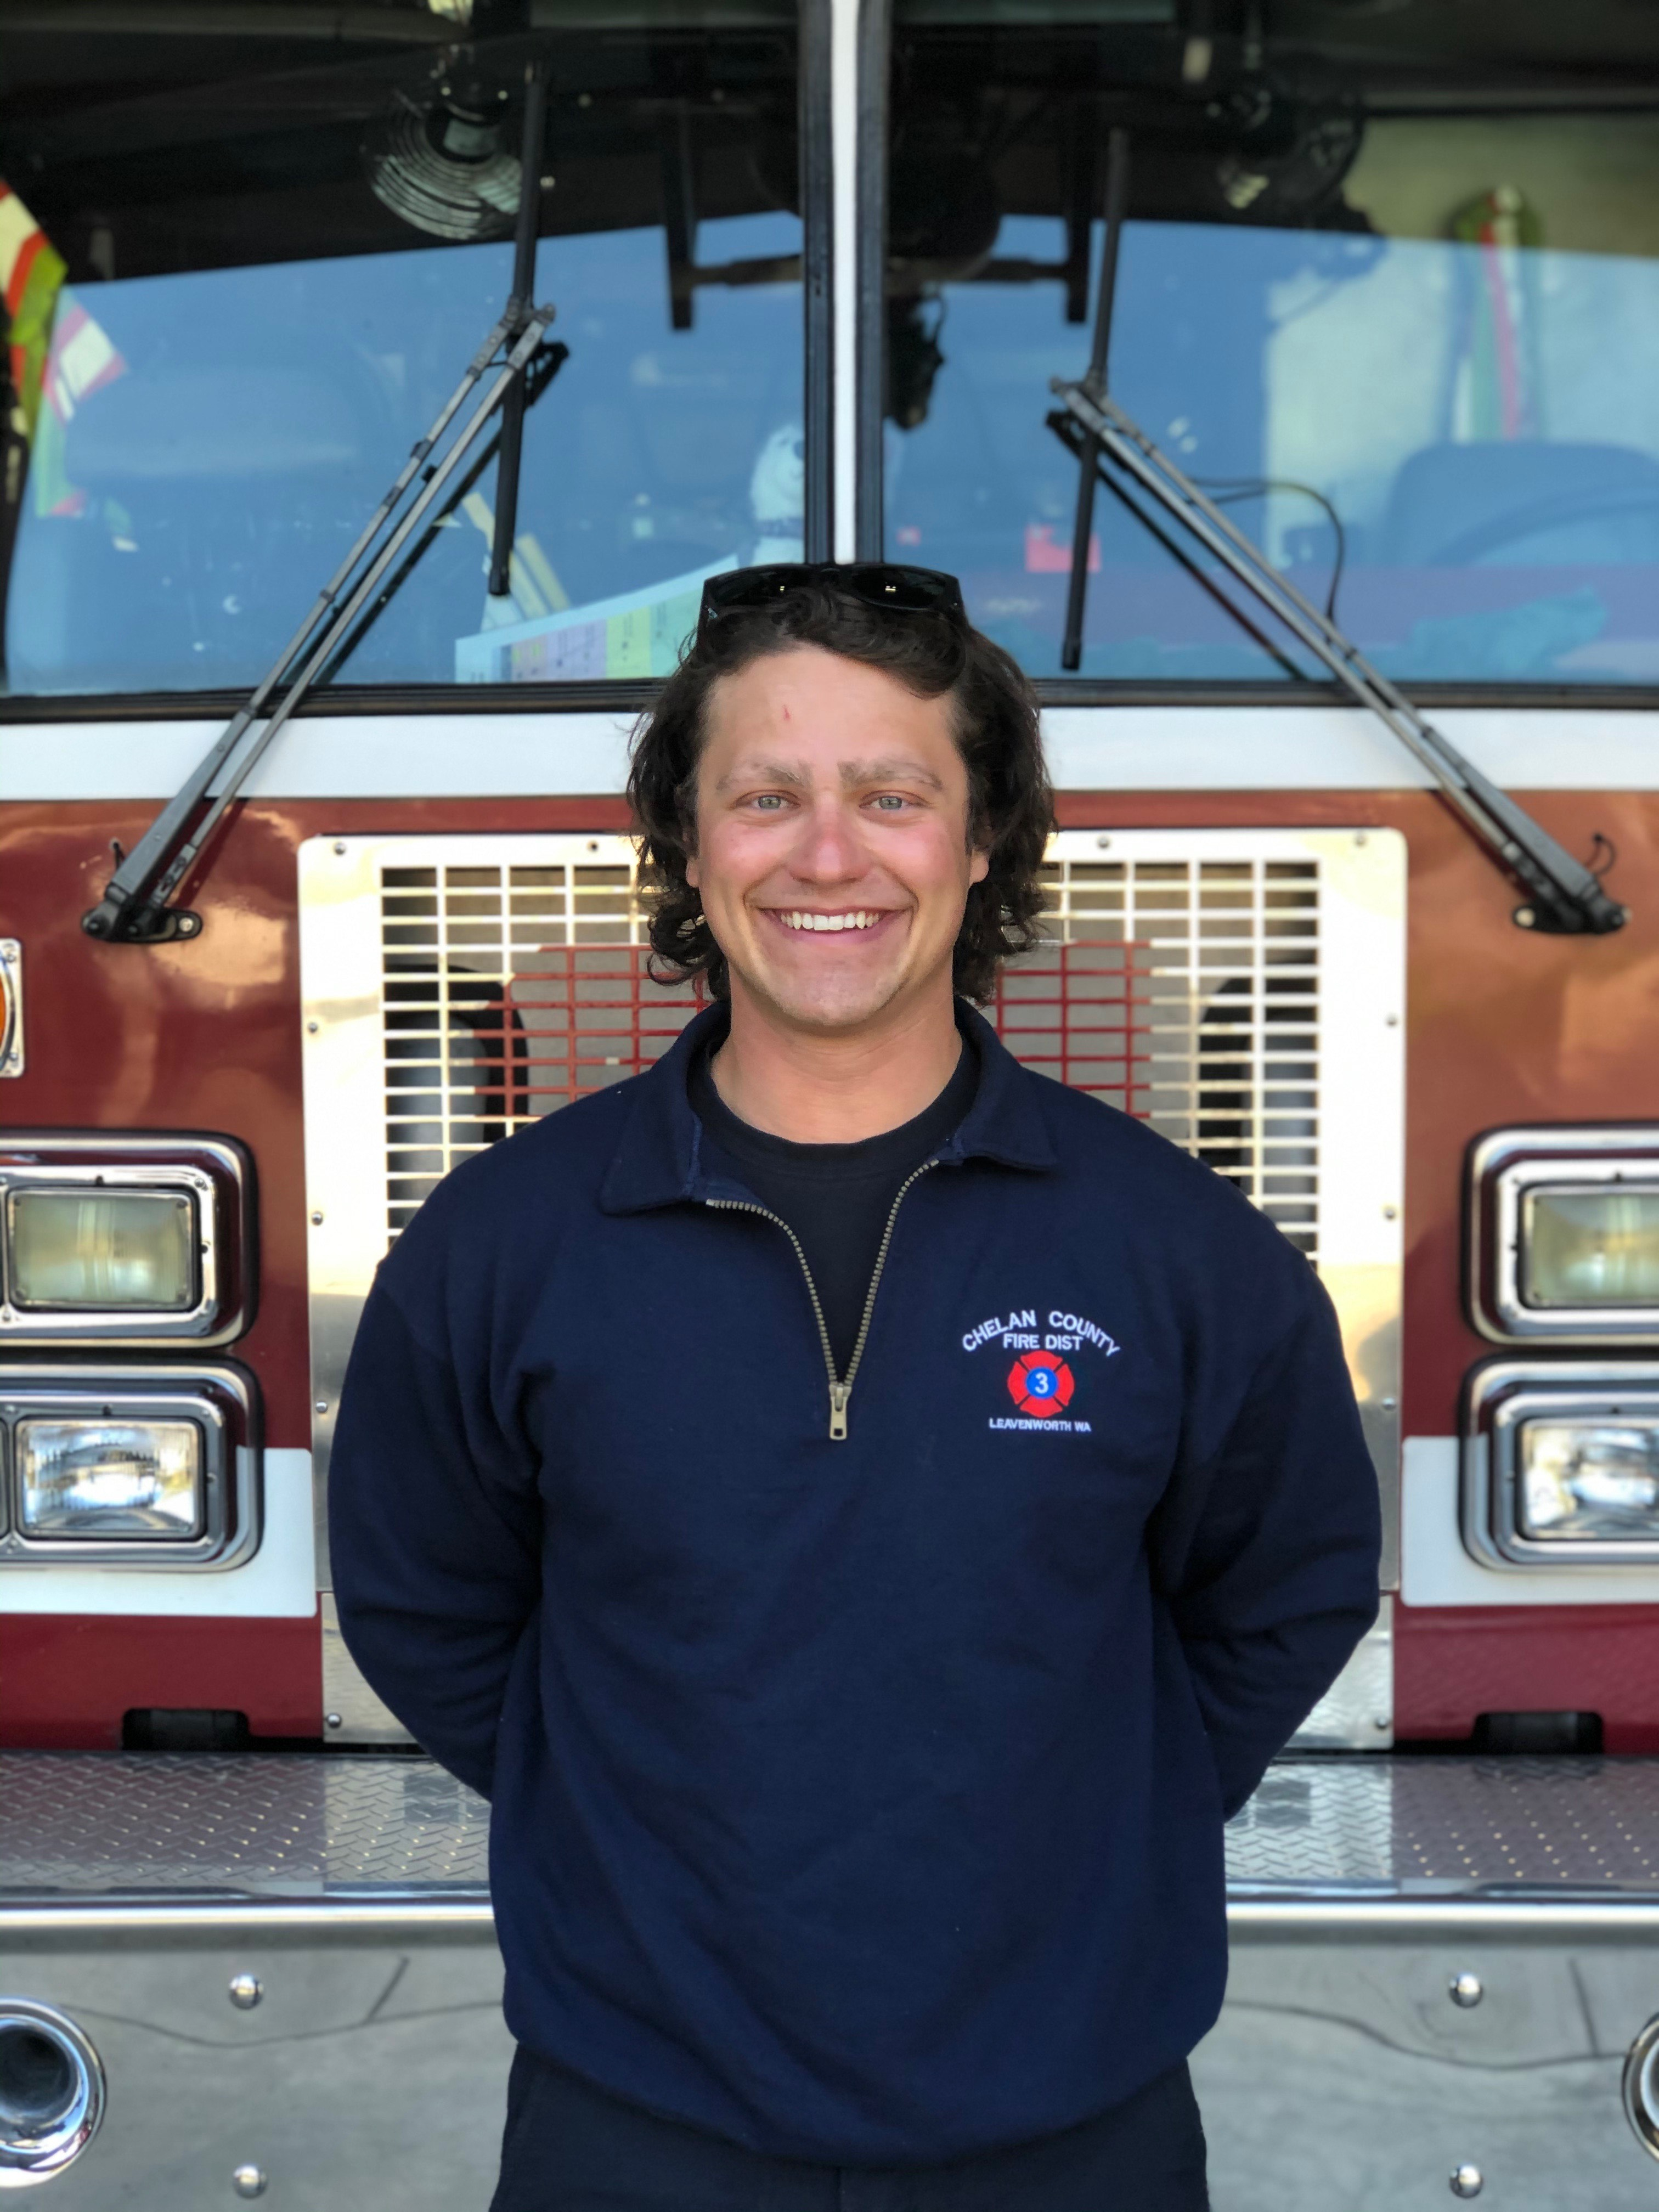 Volunteer Firefighter Cody Calhoon